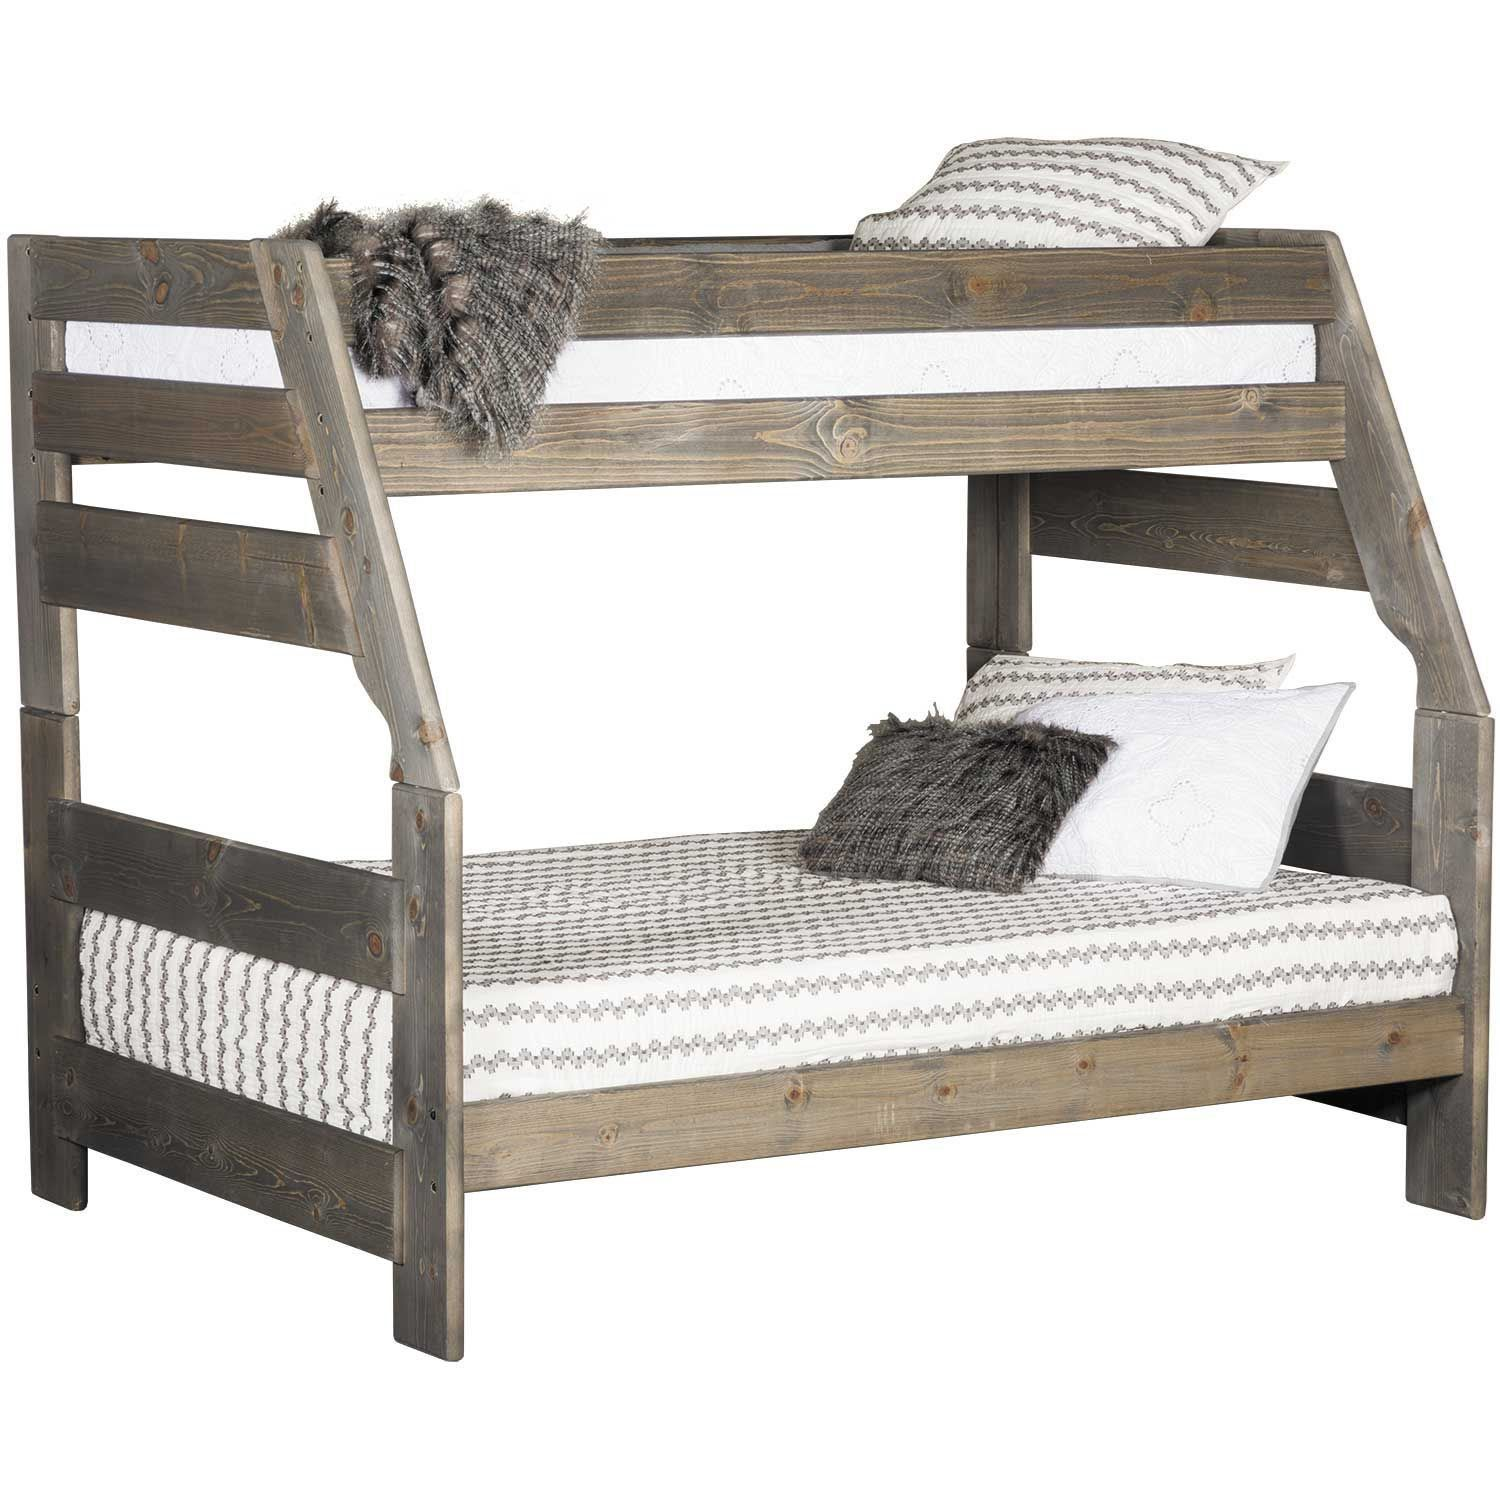 Cheyenne Driftwood Twin Over Full Bunk Bed Full Bunk Beds Bunk Beds Bunk Beds With Stairs